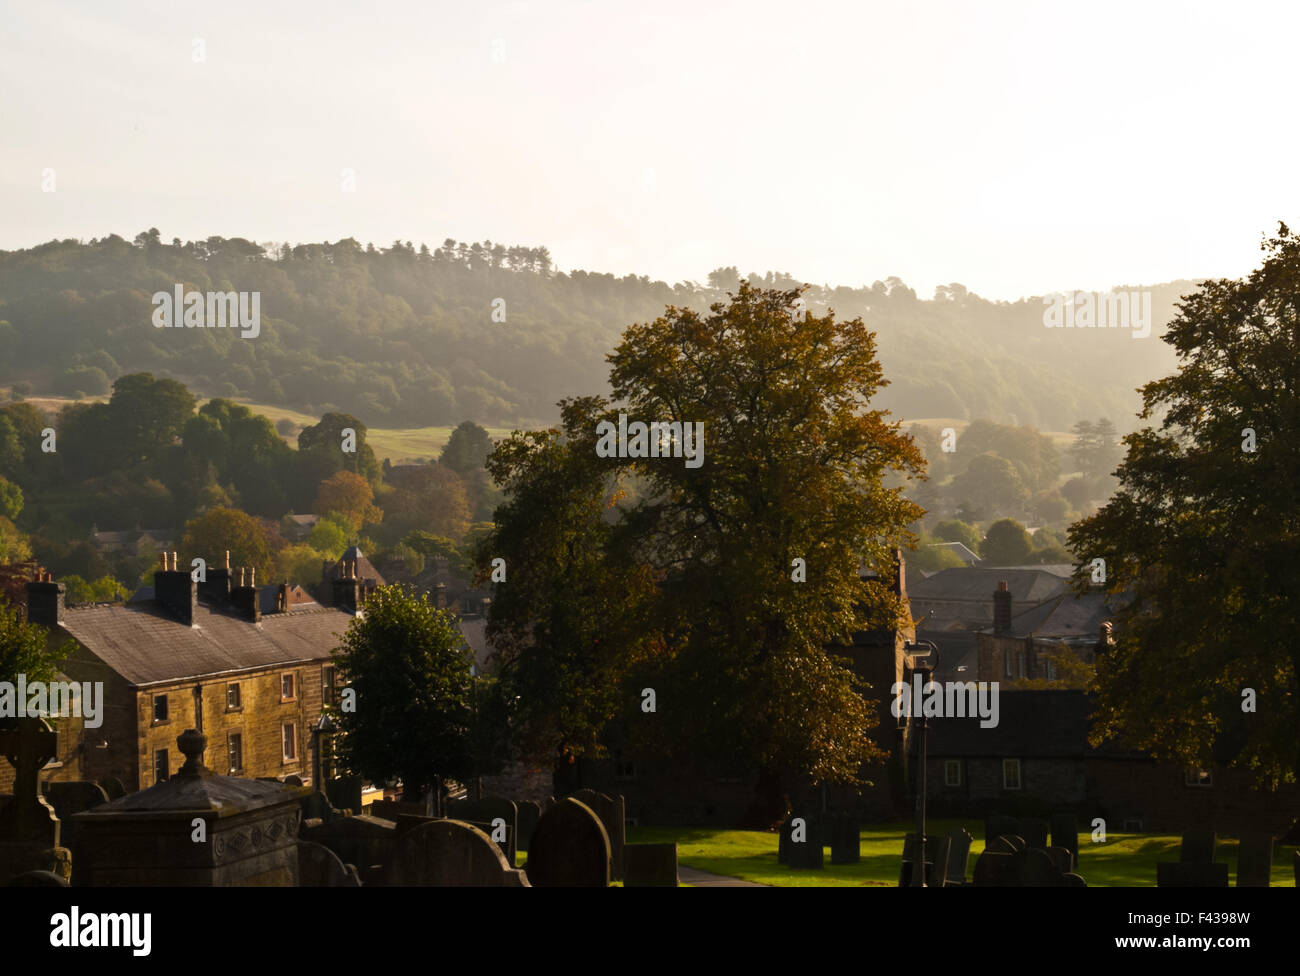 A view from All Saints Church, Bakewell, Derbyshire, Peak District, UK taken on OLYMPUS DIGITAL CAMERA - Stock Image